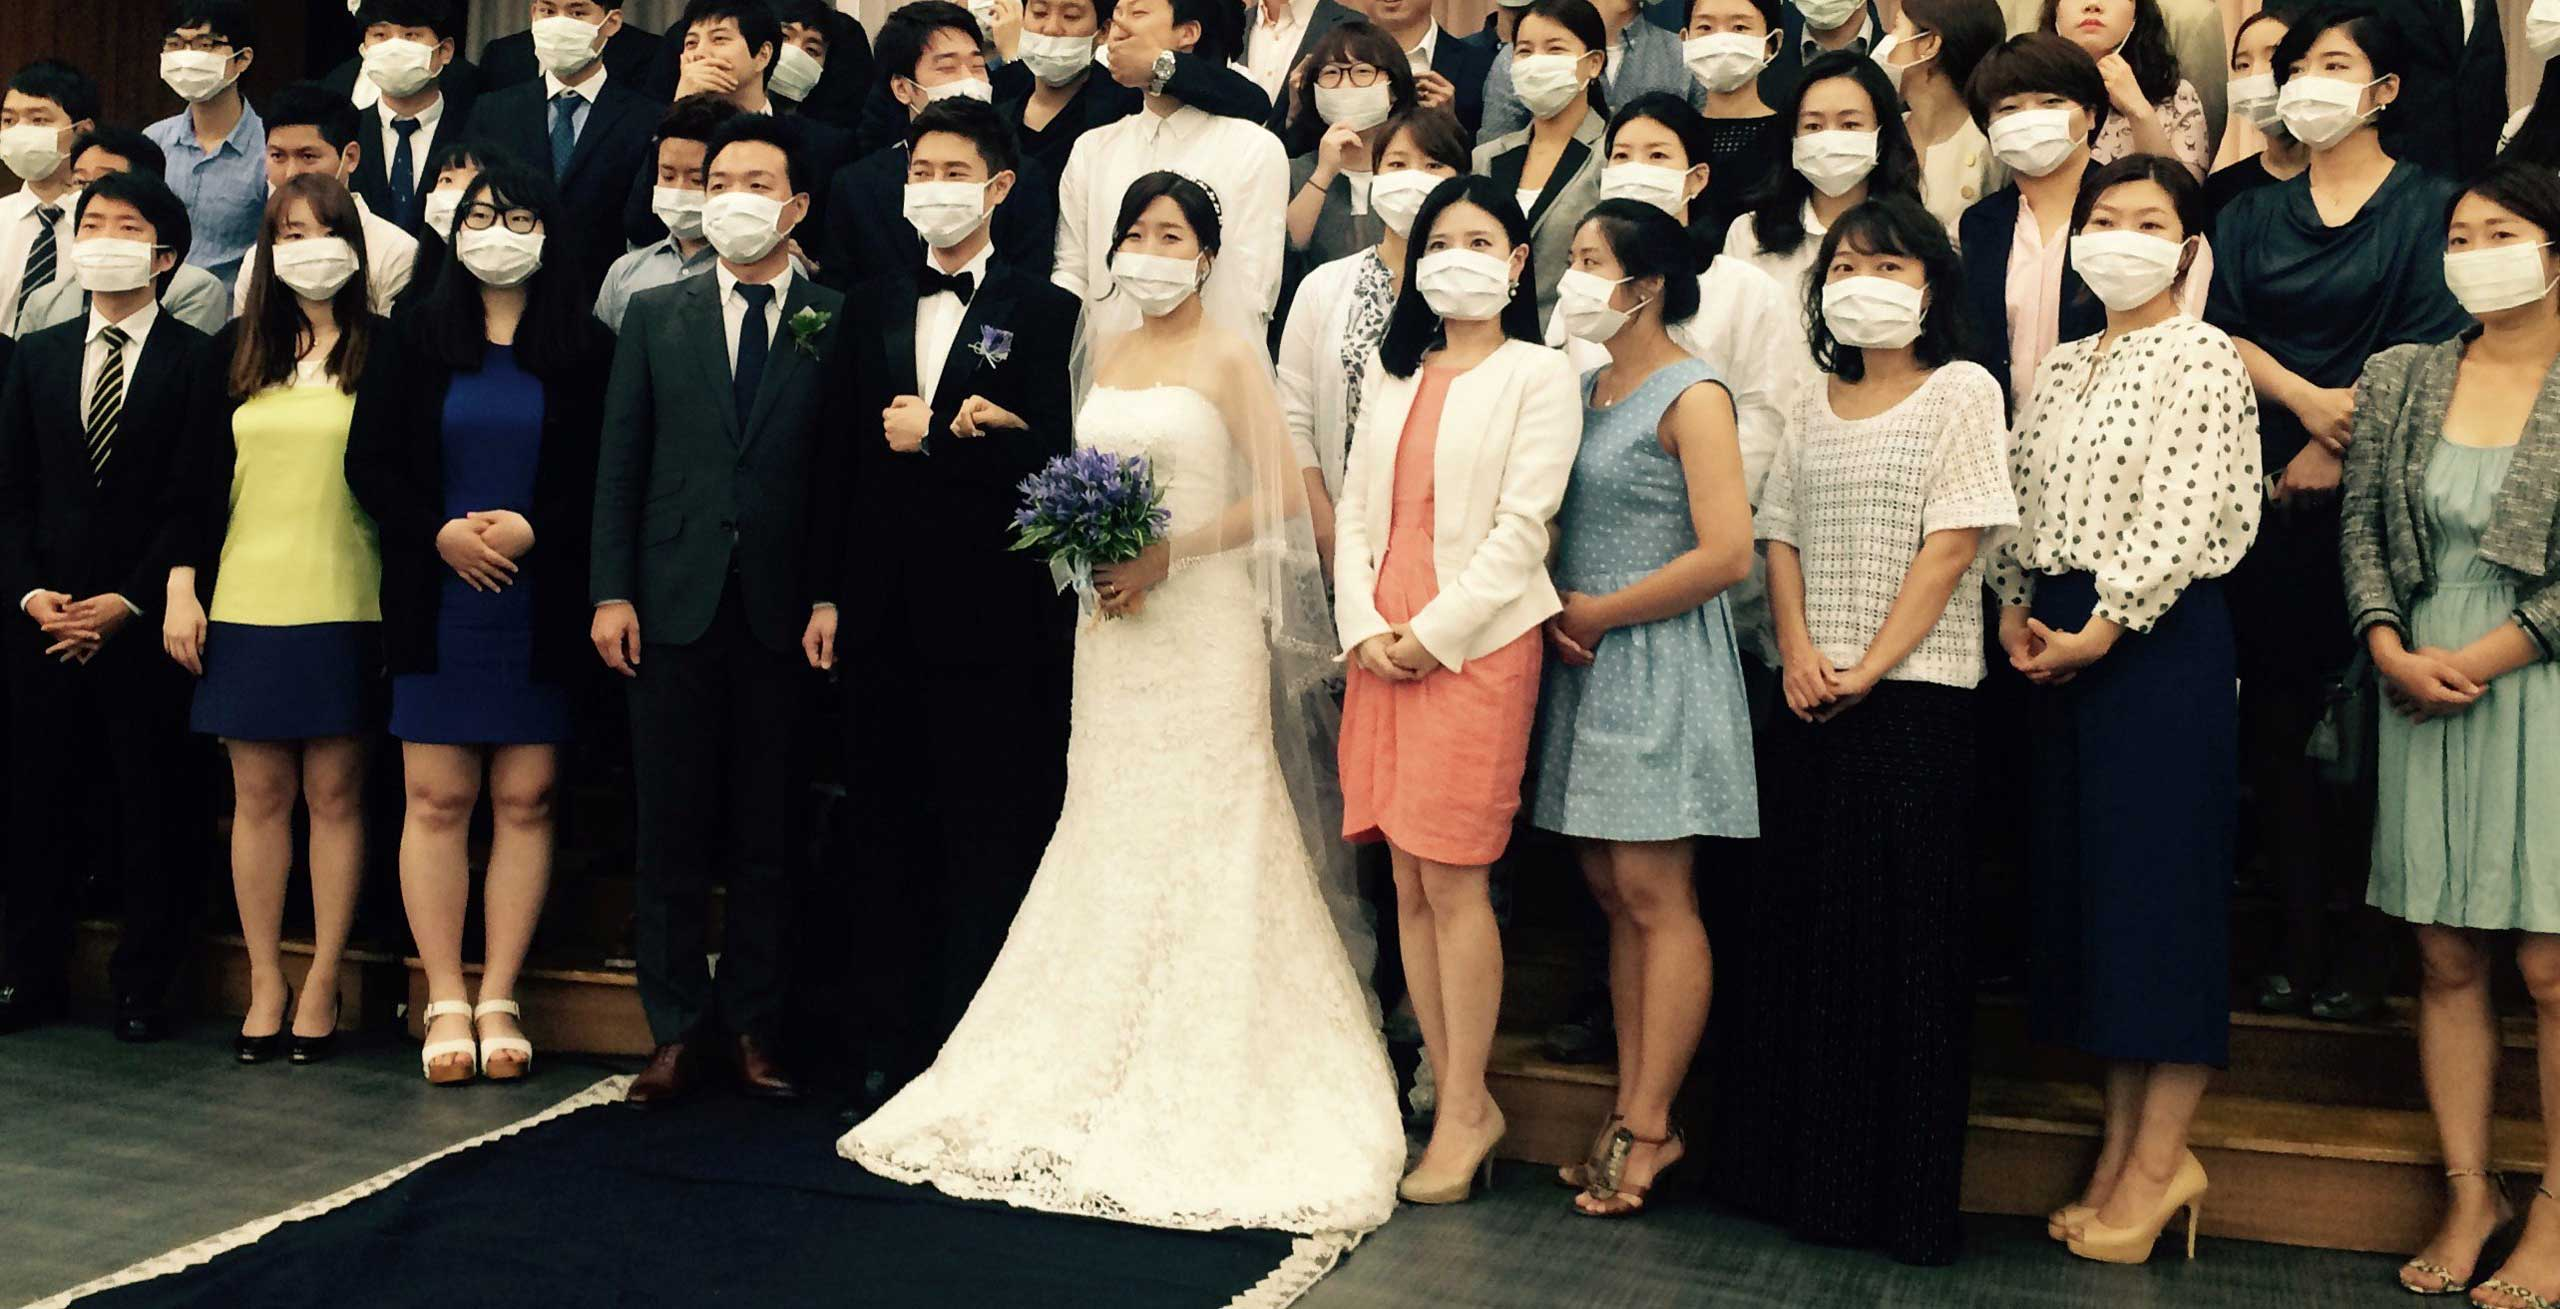 A young South Korean couple and dozens of guests standing together for a group photo in Seoul on June 6, 2015. The young South Korean couple became an unexpected symbol of the MERS health scare sweeping the nation after a different photo of the same group showing the couple and guests jokingly posed wearing surgical masks went viral.